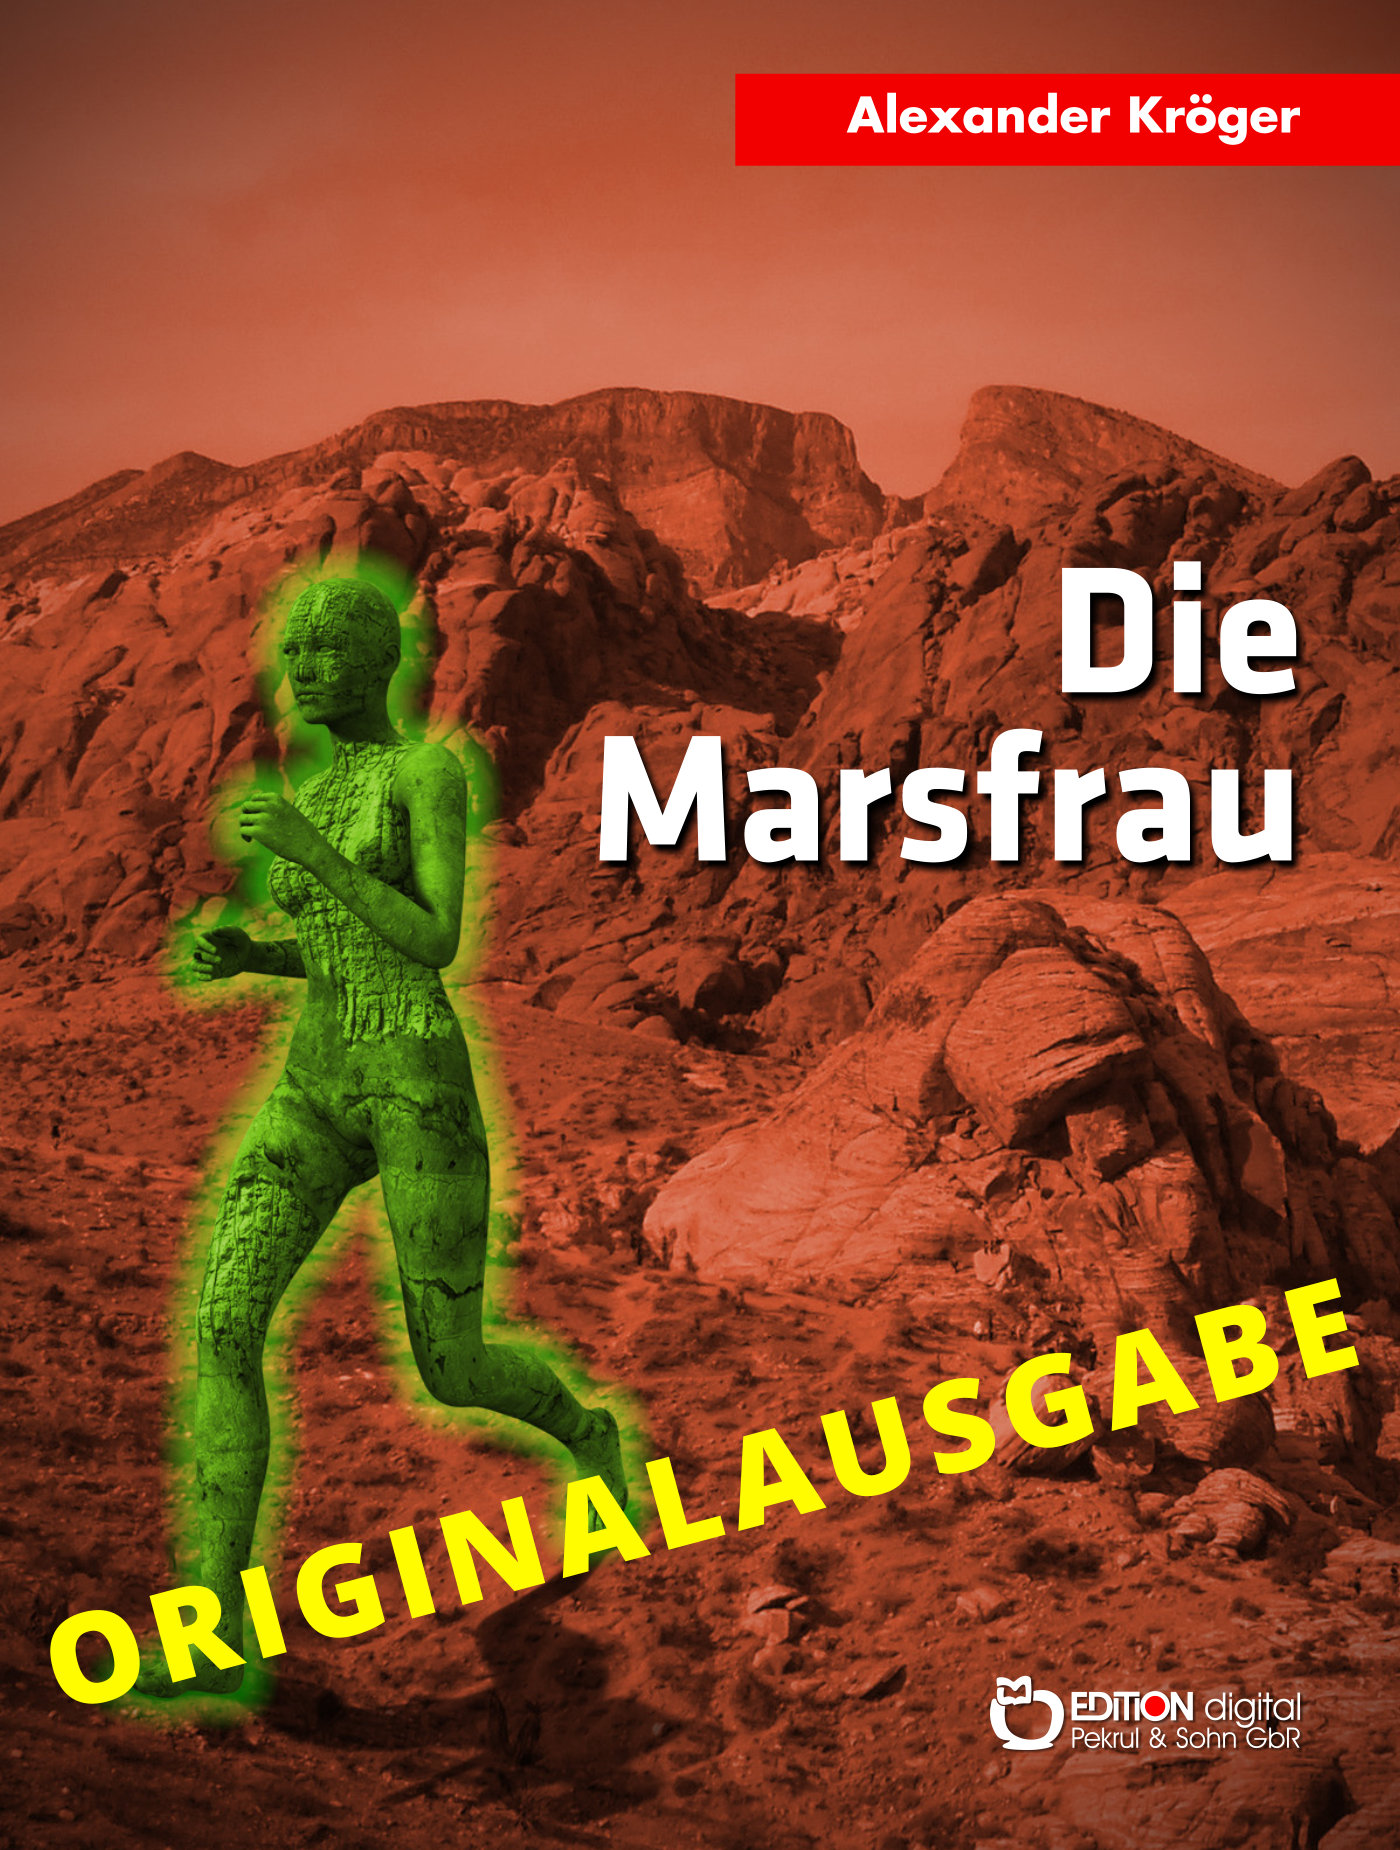 Die Marsfrau – Originalausgabe. Wissenschaftlich-phantastischer Roman von Alexander Kröger